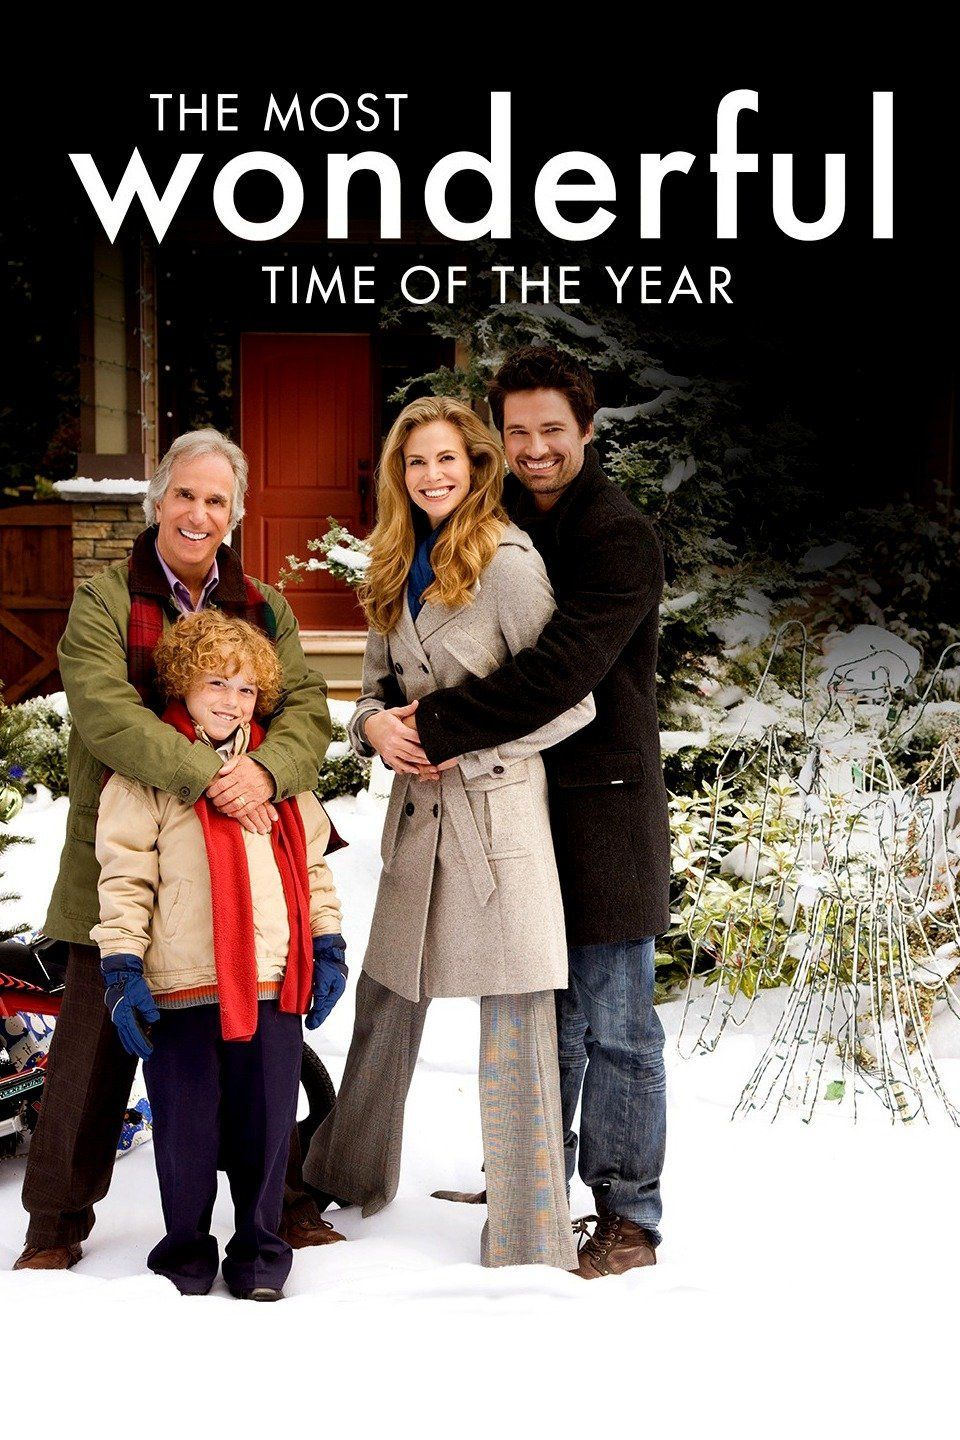 Can You Get Hallmark Channel On Hulu 25 Best Christmas Movies On Amazon Prime To Stream This December Hallmark Movies Prime Christmas Movies Best Christmas Movies